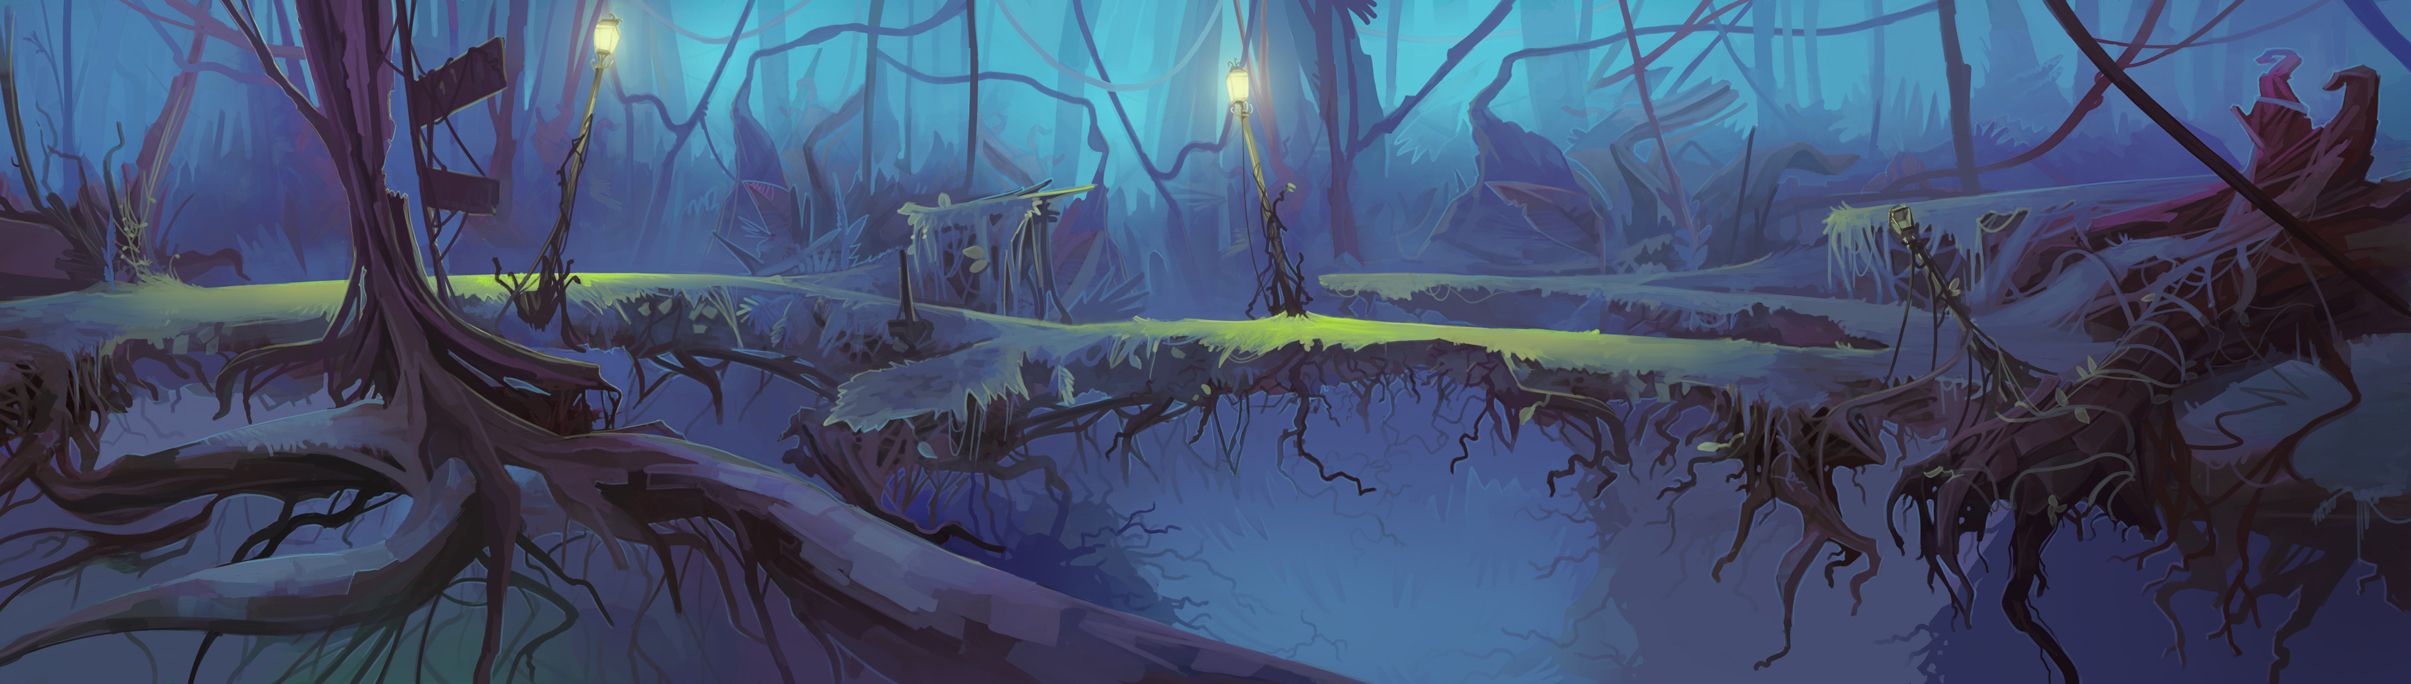 Mysterious Forest Animation BG by Appylon